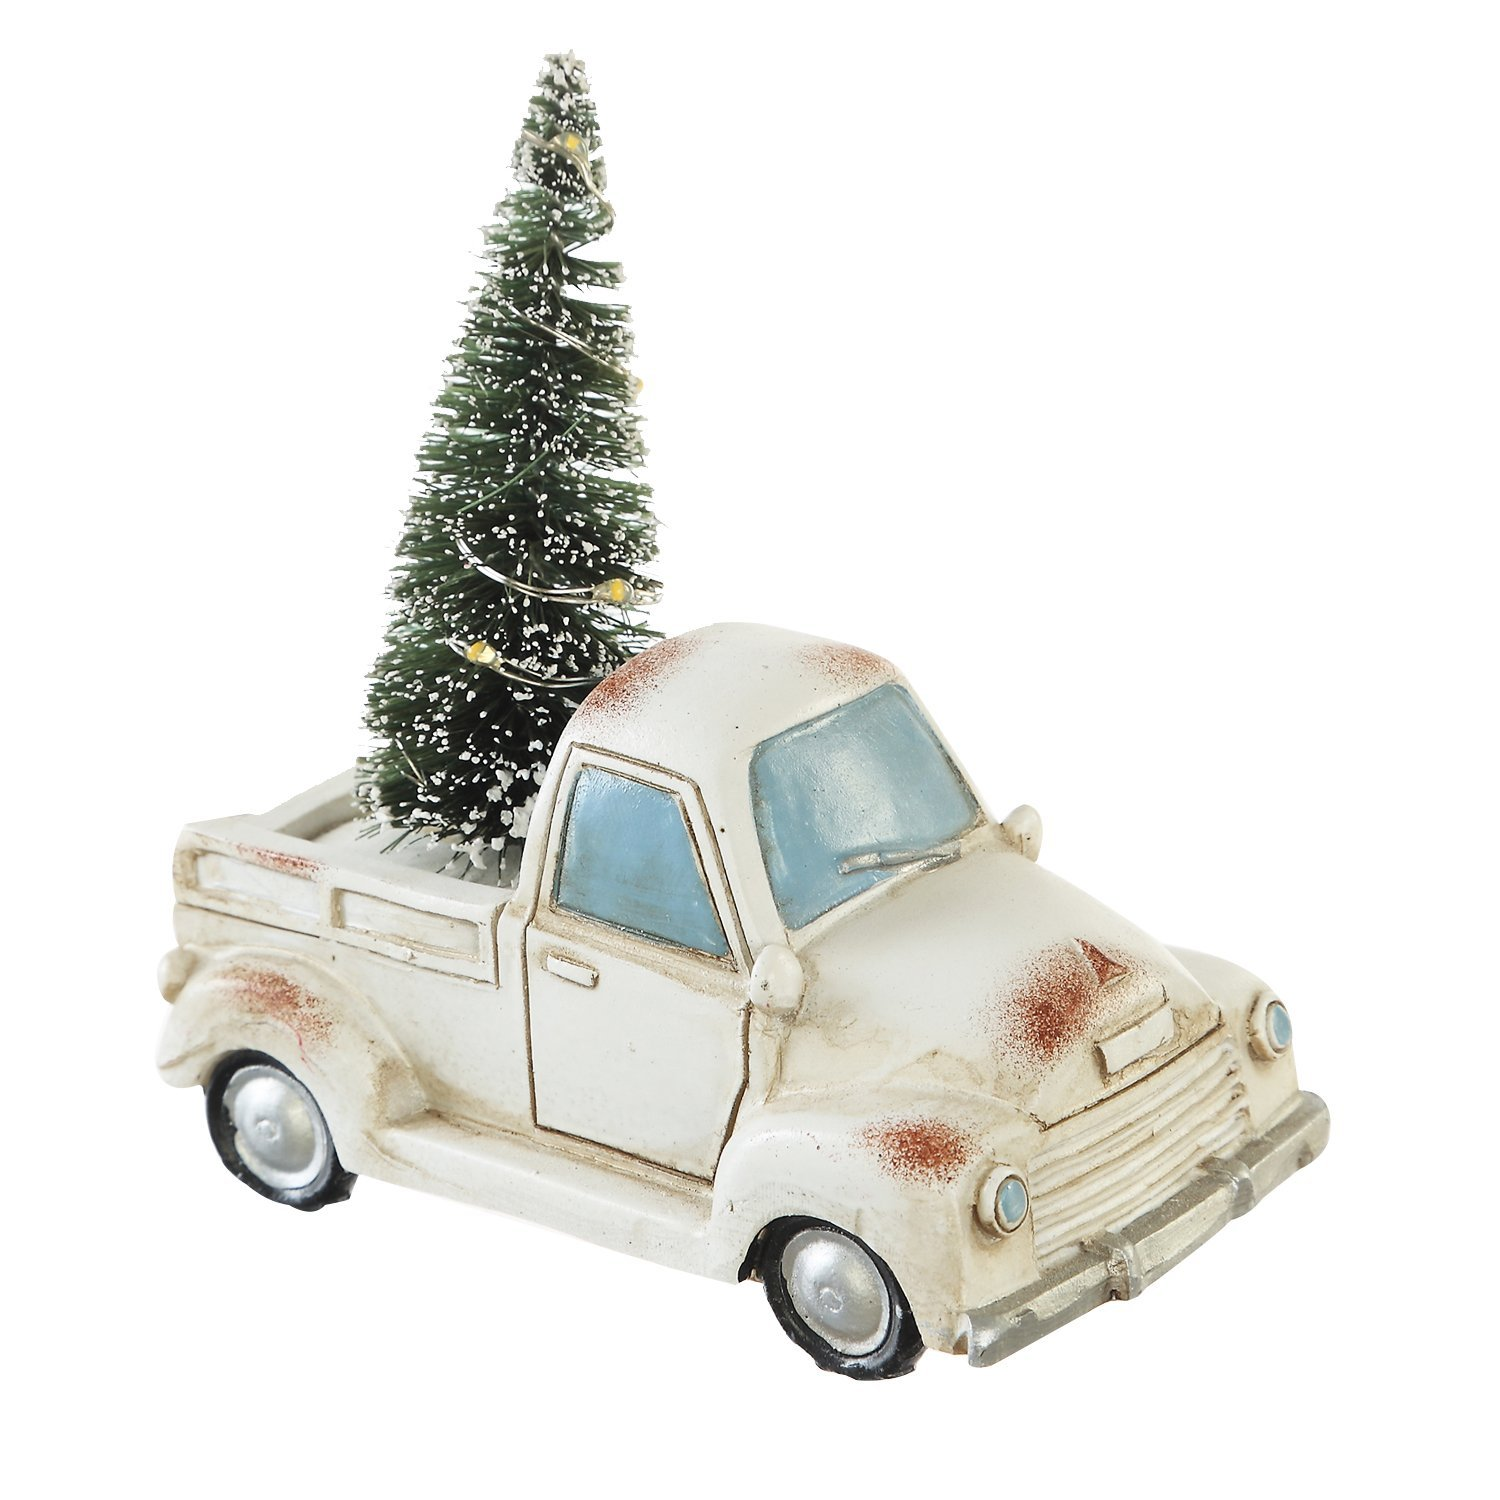 CEDAR HOME Holiday Truck with LED Light Up Tree Table Decor Miniature Home Ornaments Figurine Holiday Gift, White, 4.25'' W x 2.5'' D x 5'' H